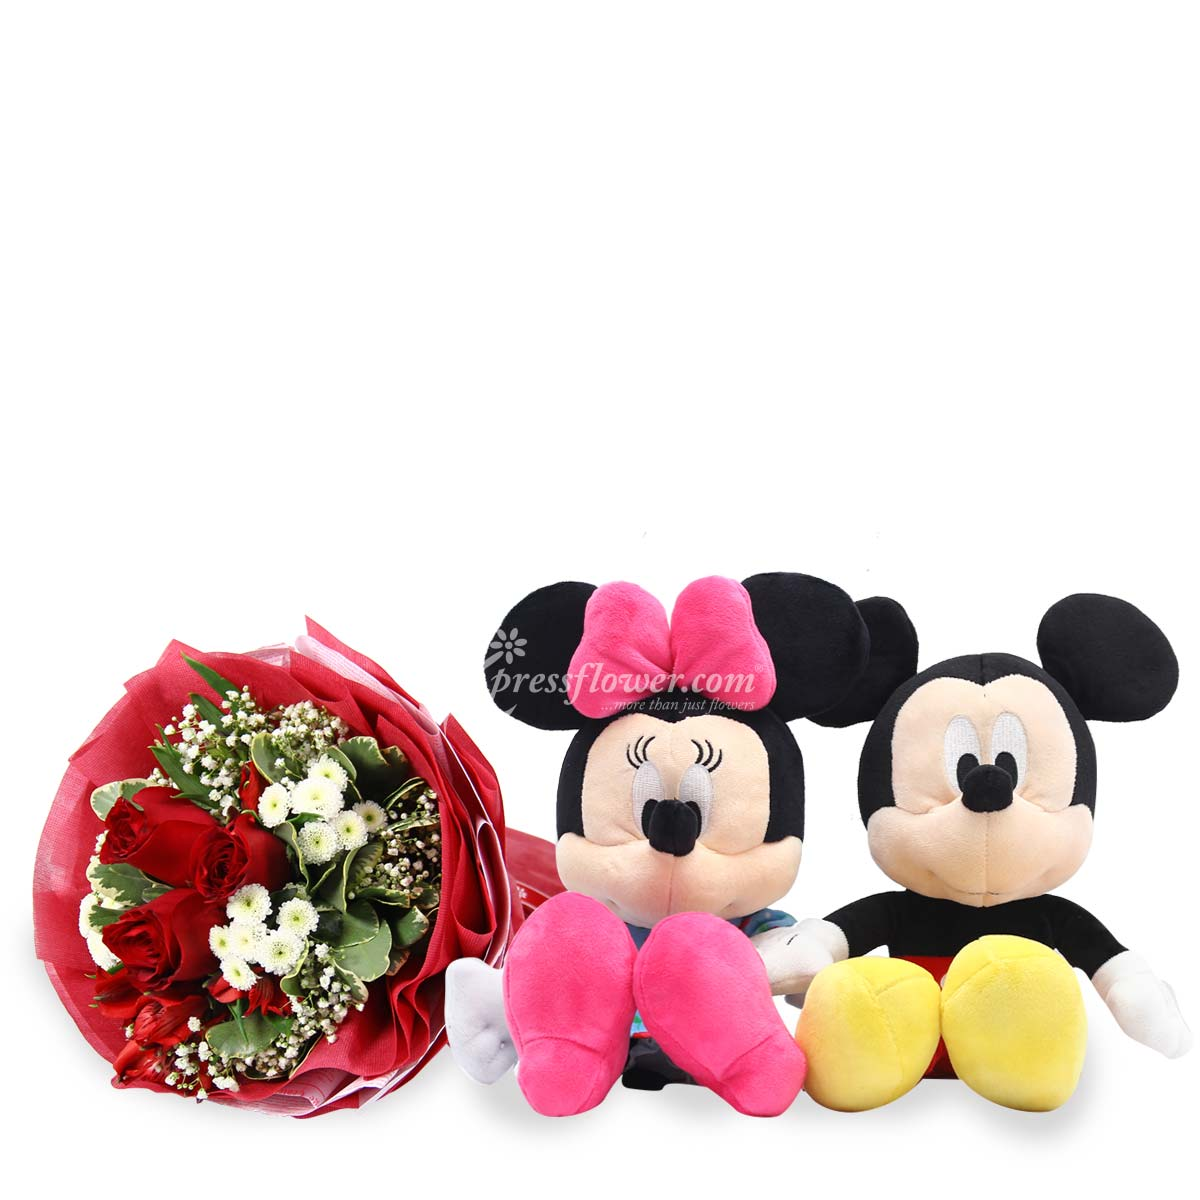 ST1703 by my side red roses mickey minnie